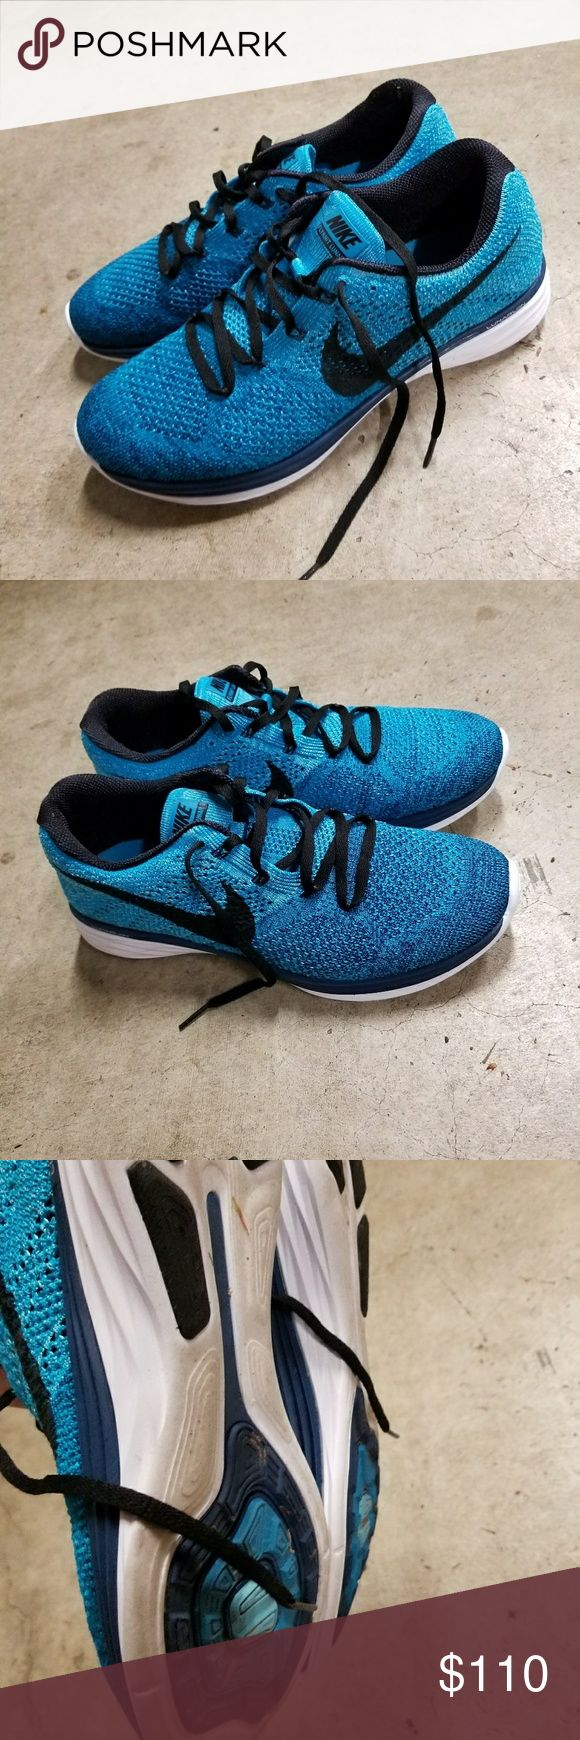 Nike lunar 3 Knit running shoe 10.5 women or size 9 in mens Nike Shoes Athletic Shoes